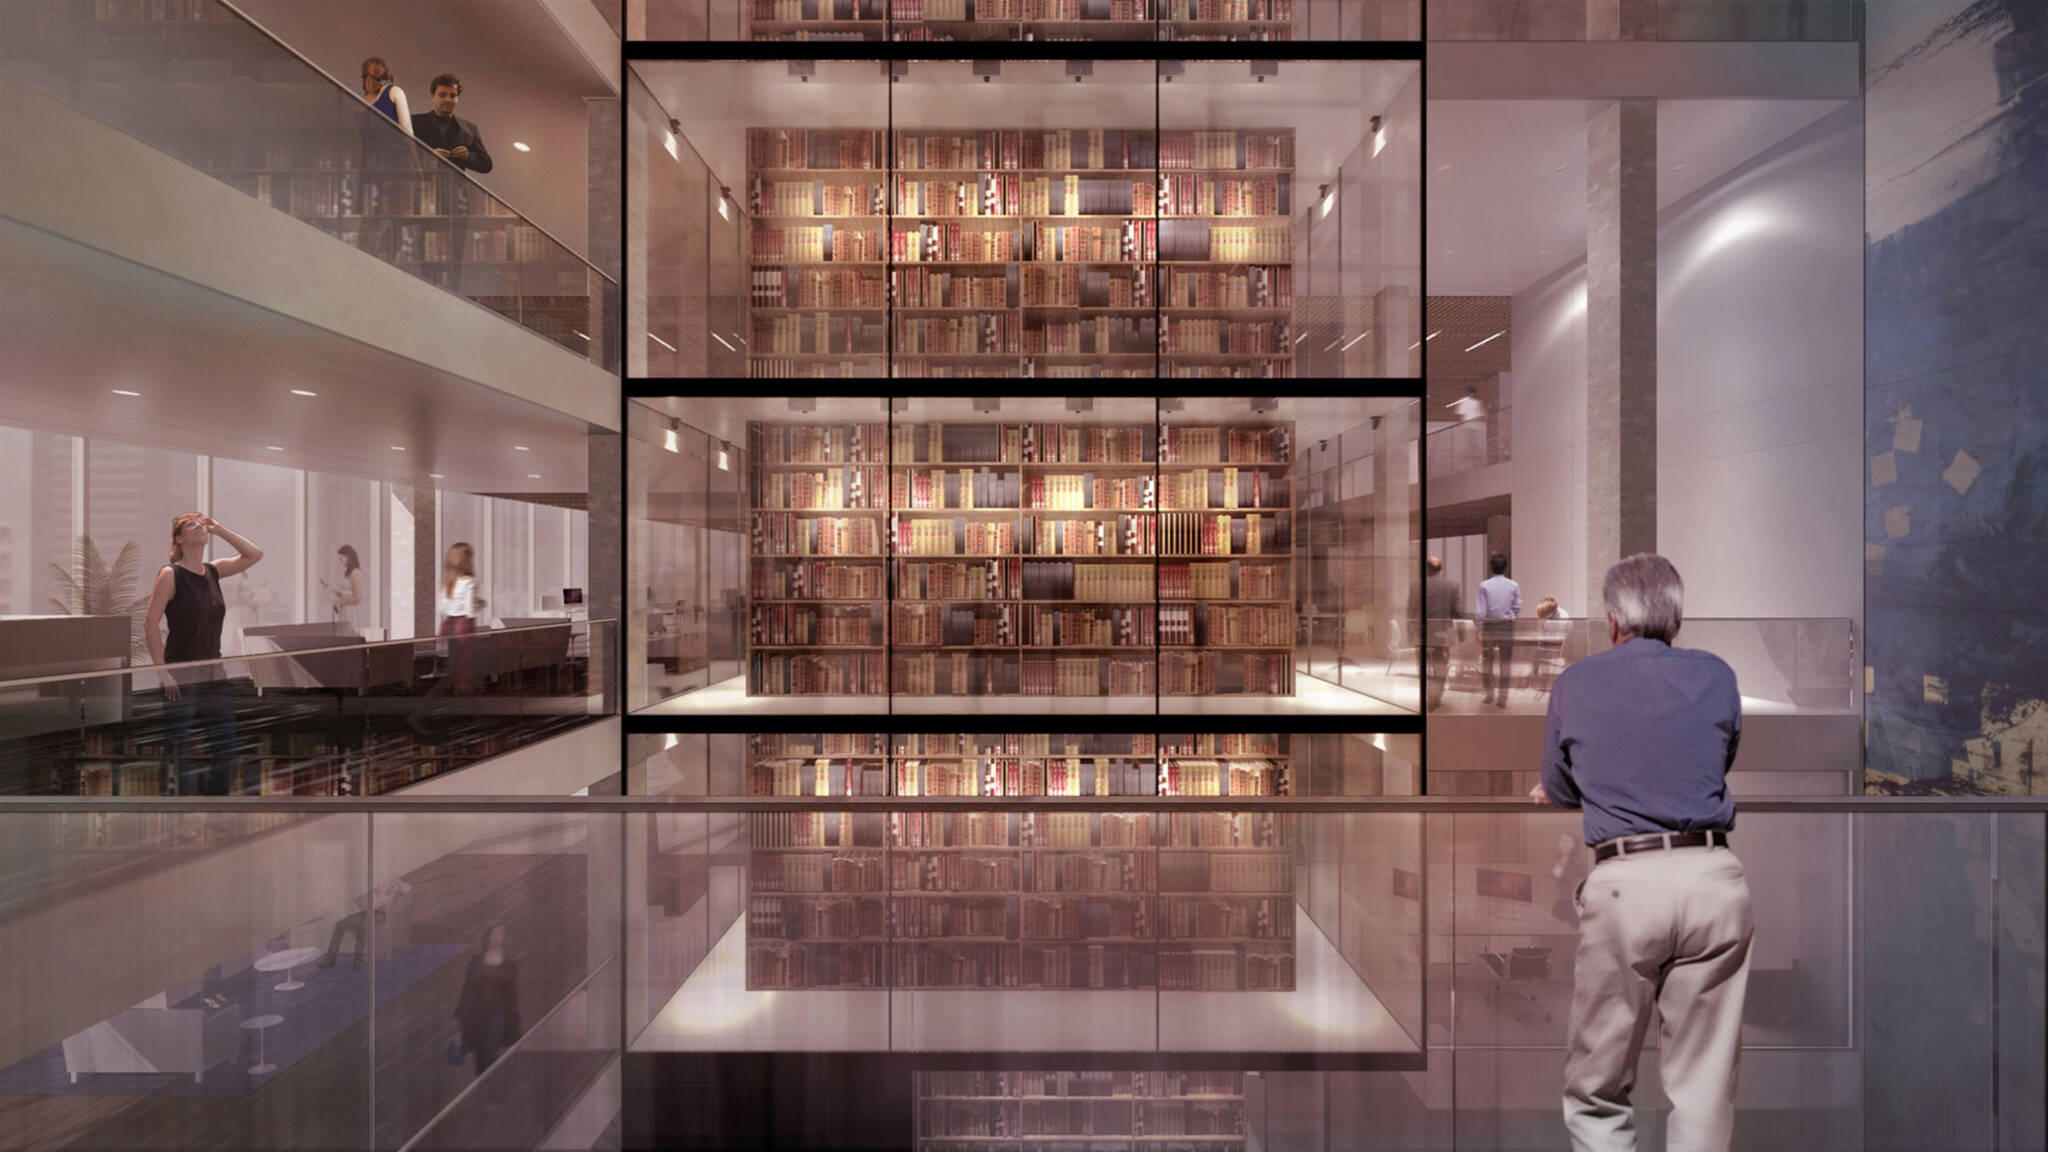 Bible Atrium of the American Bible Society project located at the Upper West Side, New York City designed by the architecture studio Danny Forster & Architecture